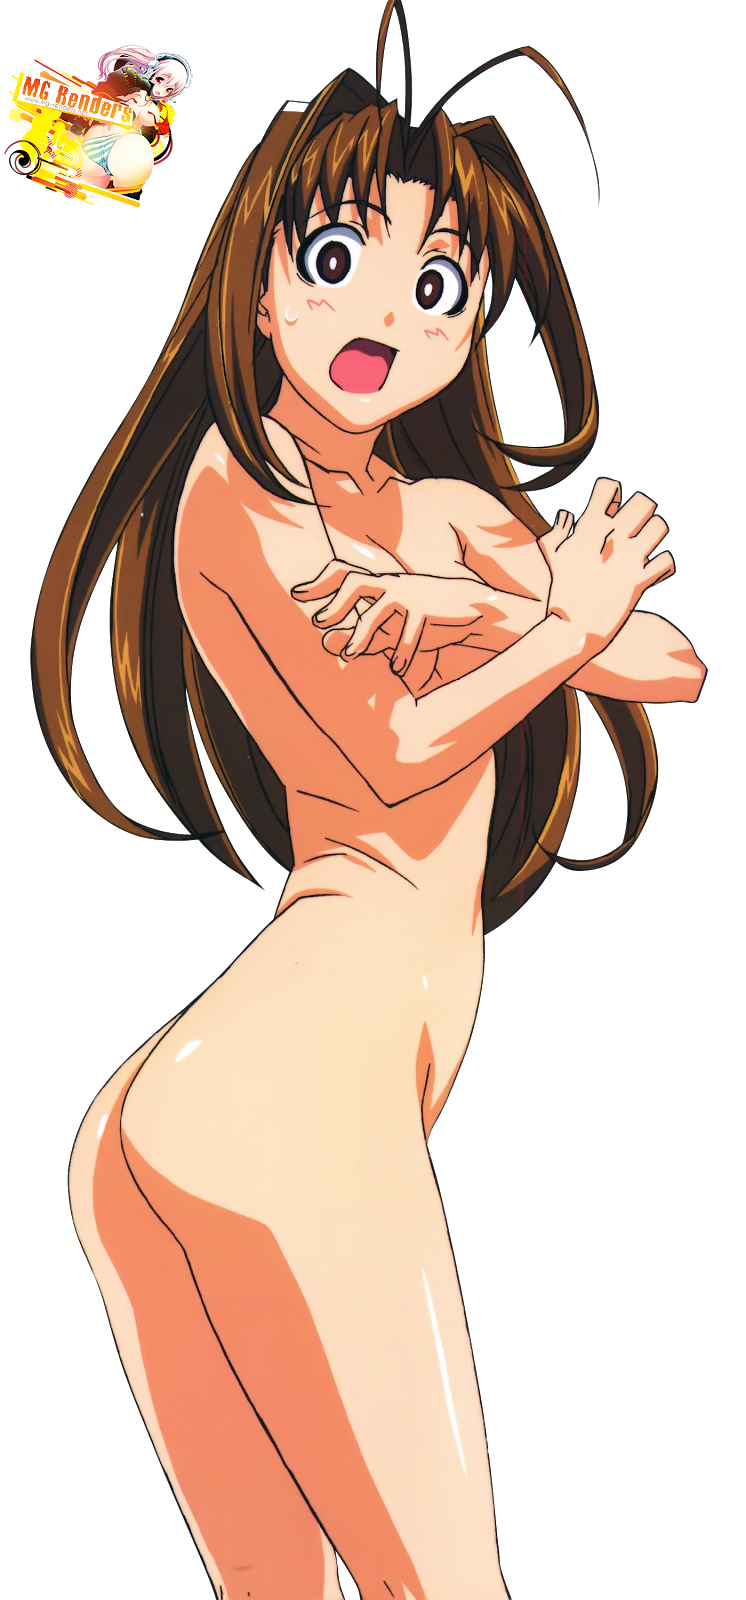 Tags: Anime, Render,  Love Hina,  Narusegawa Naru,  No bra,  Topless, PNG, Image, Picture